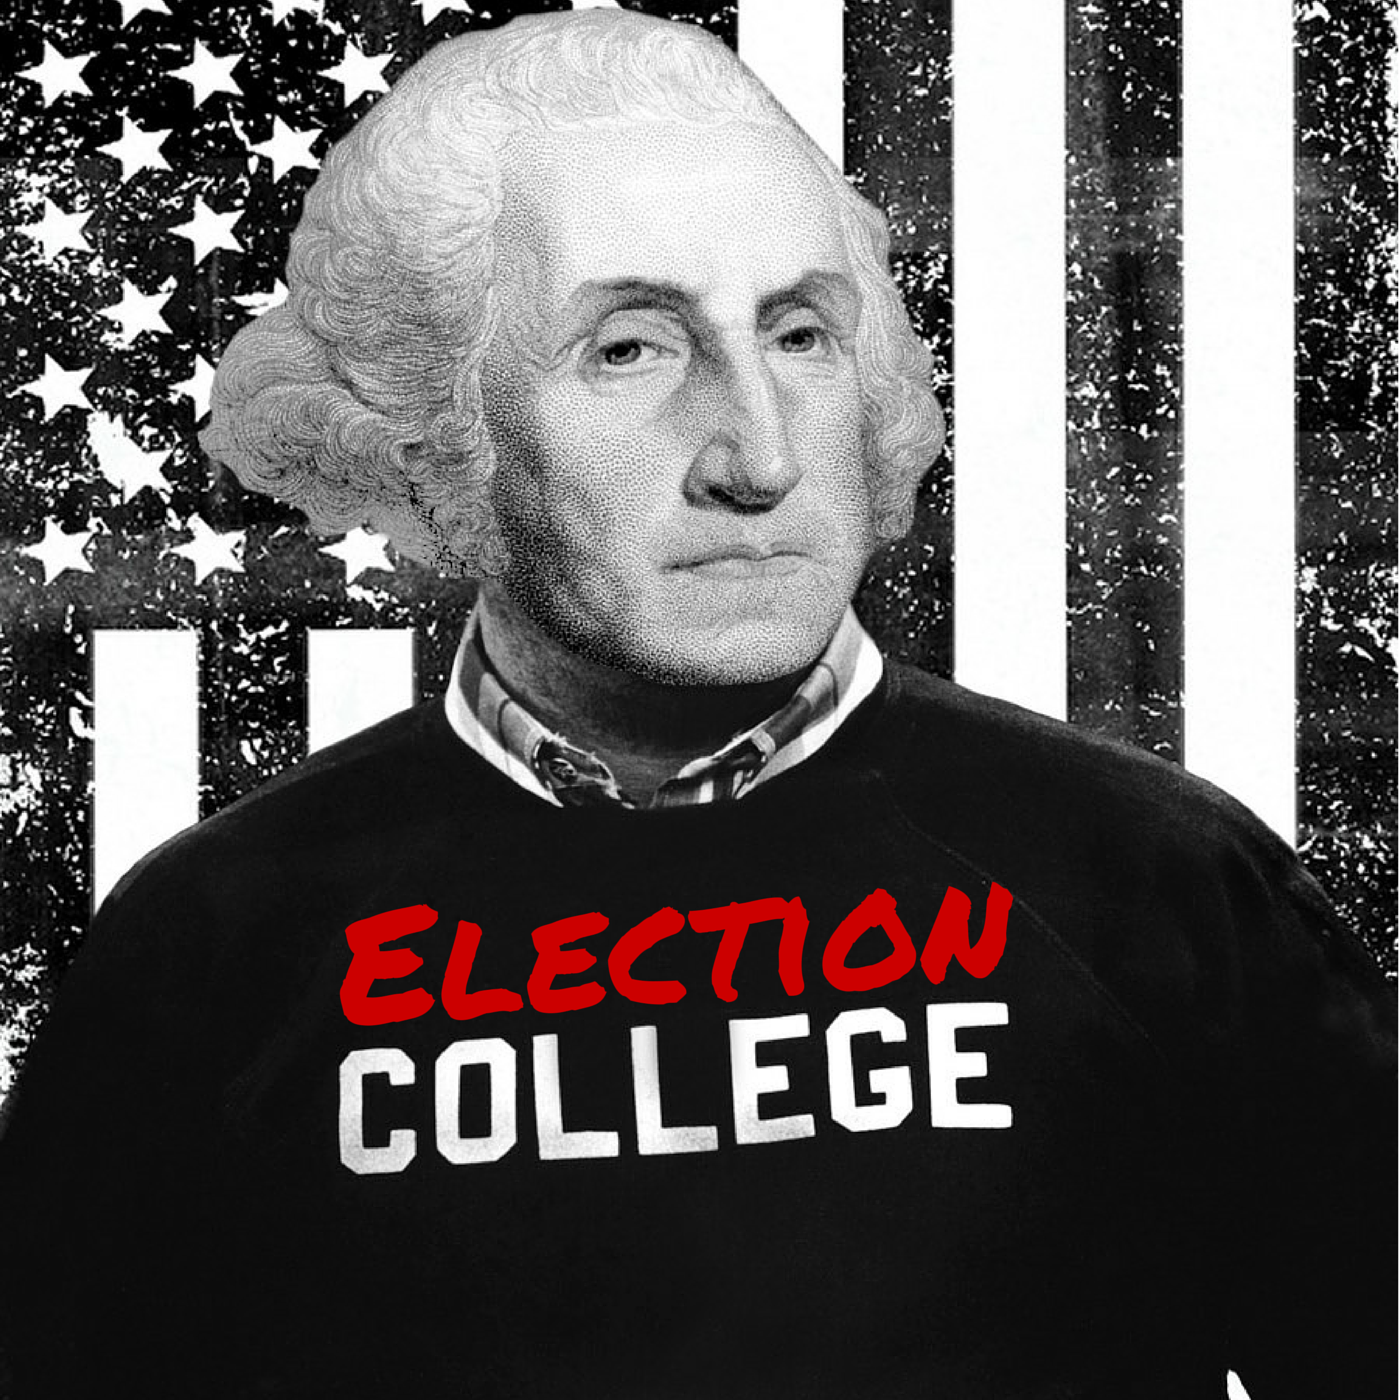 The People Love Richard Nixon - The Election of 1972   Episode #066   Election College: United States Presidential Election History